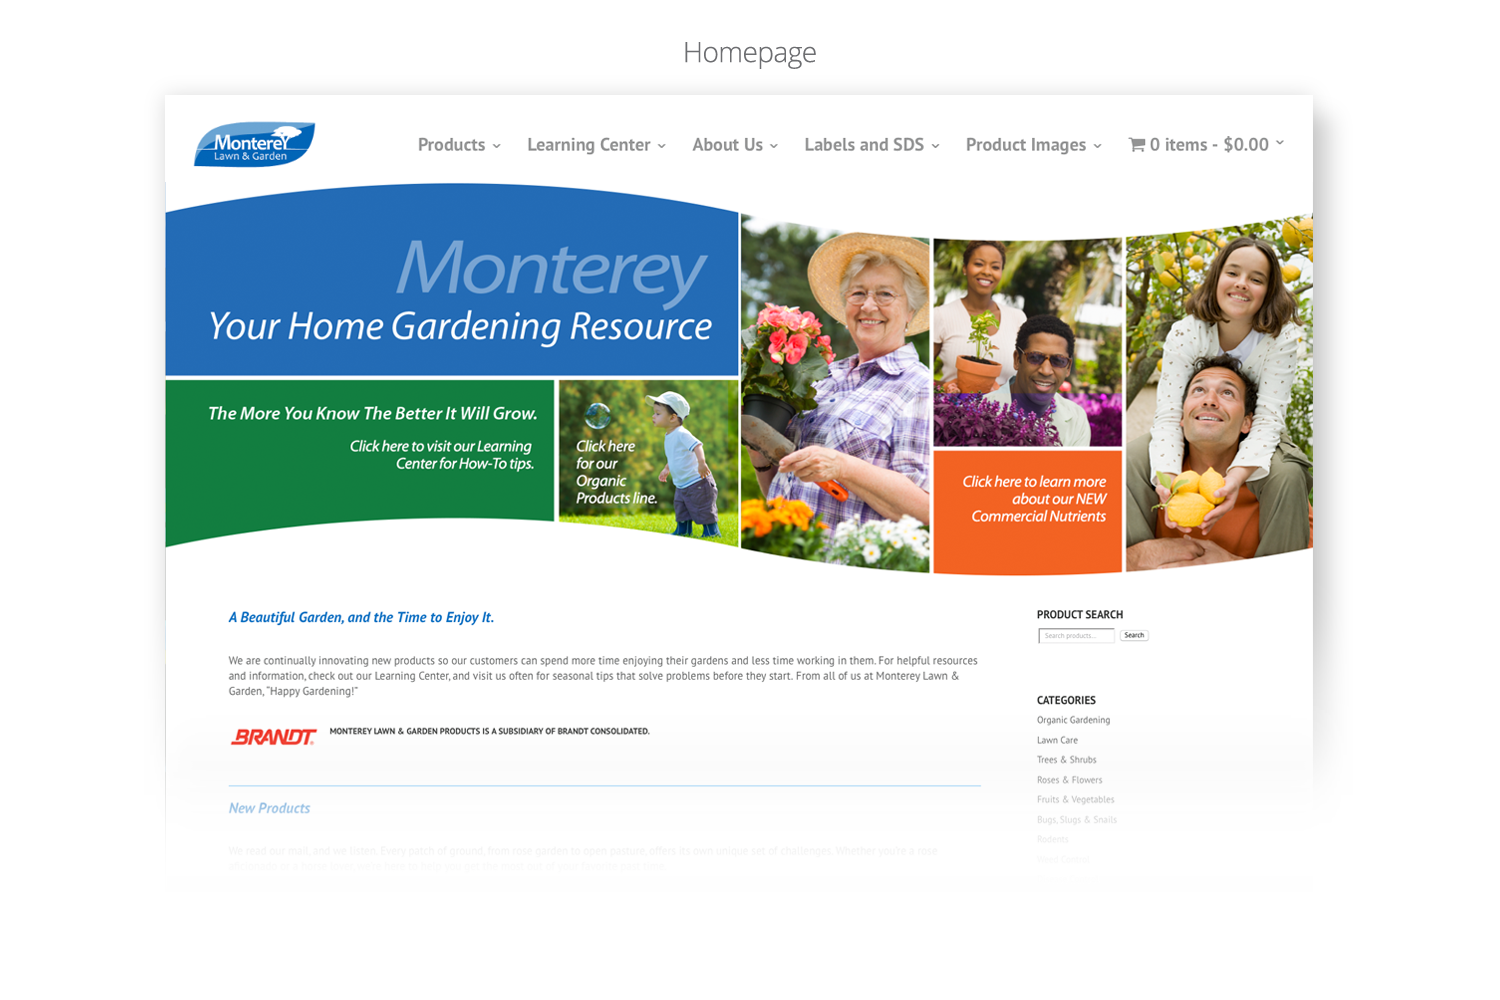 DMI Agency design for Monterey Lawn Garden website - Homepage